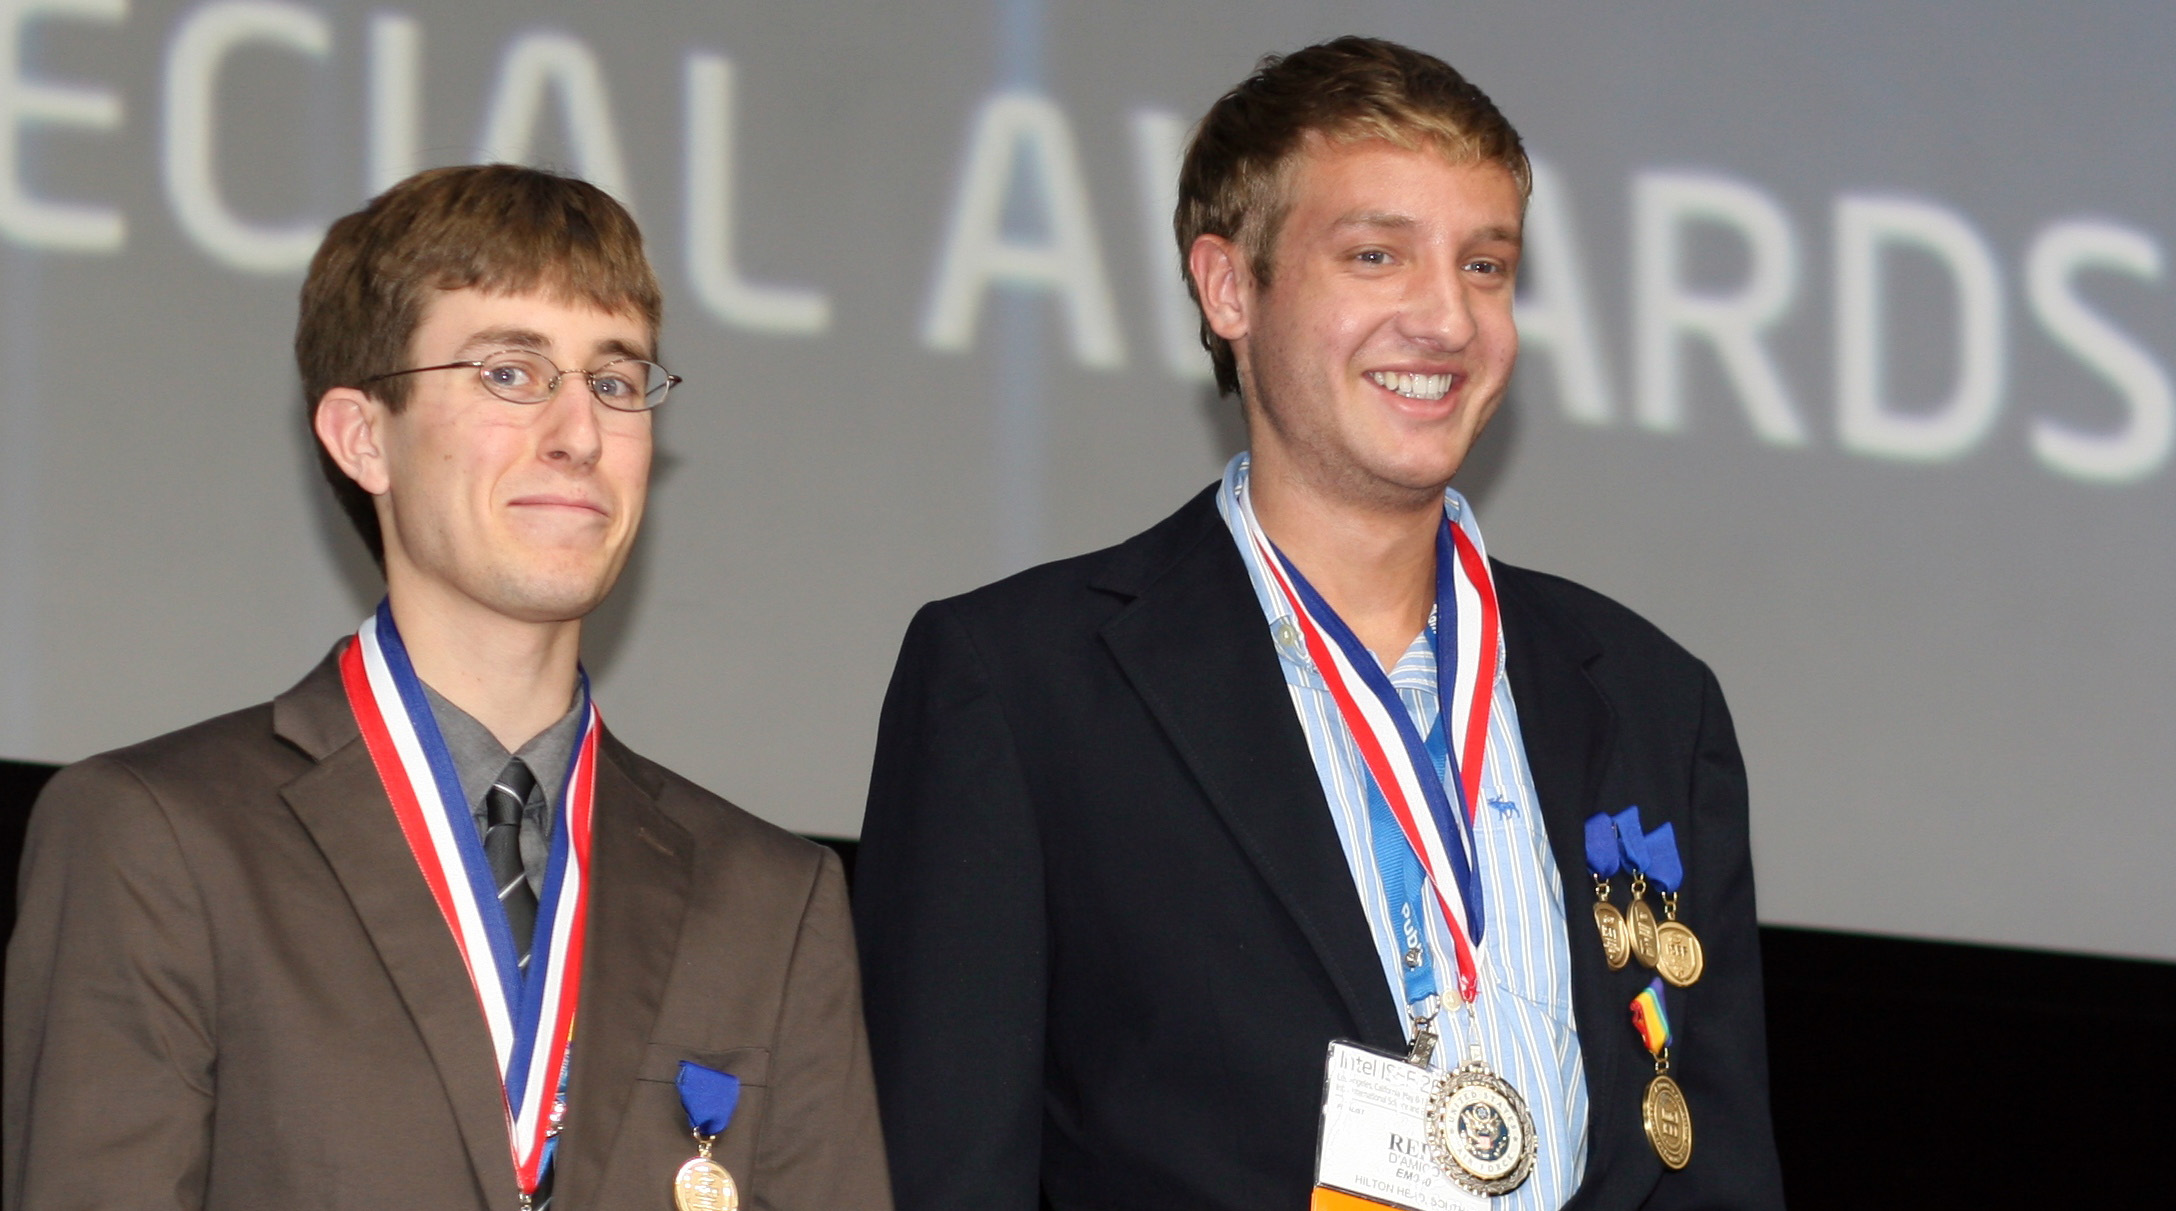 Reid D'Amico (right) receiving a Special Award from the U.S. Air Force at Intel ISEF 2011.